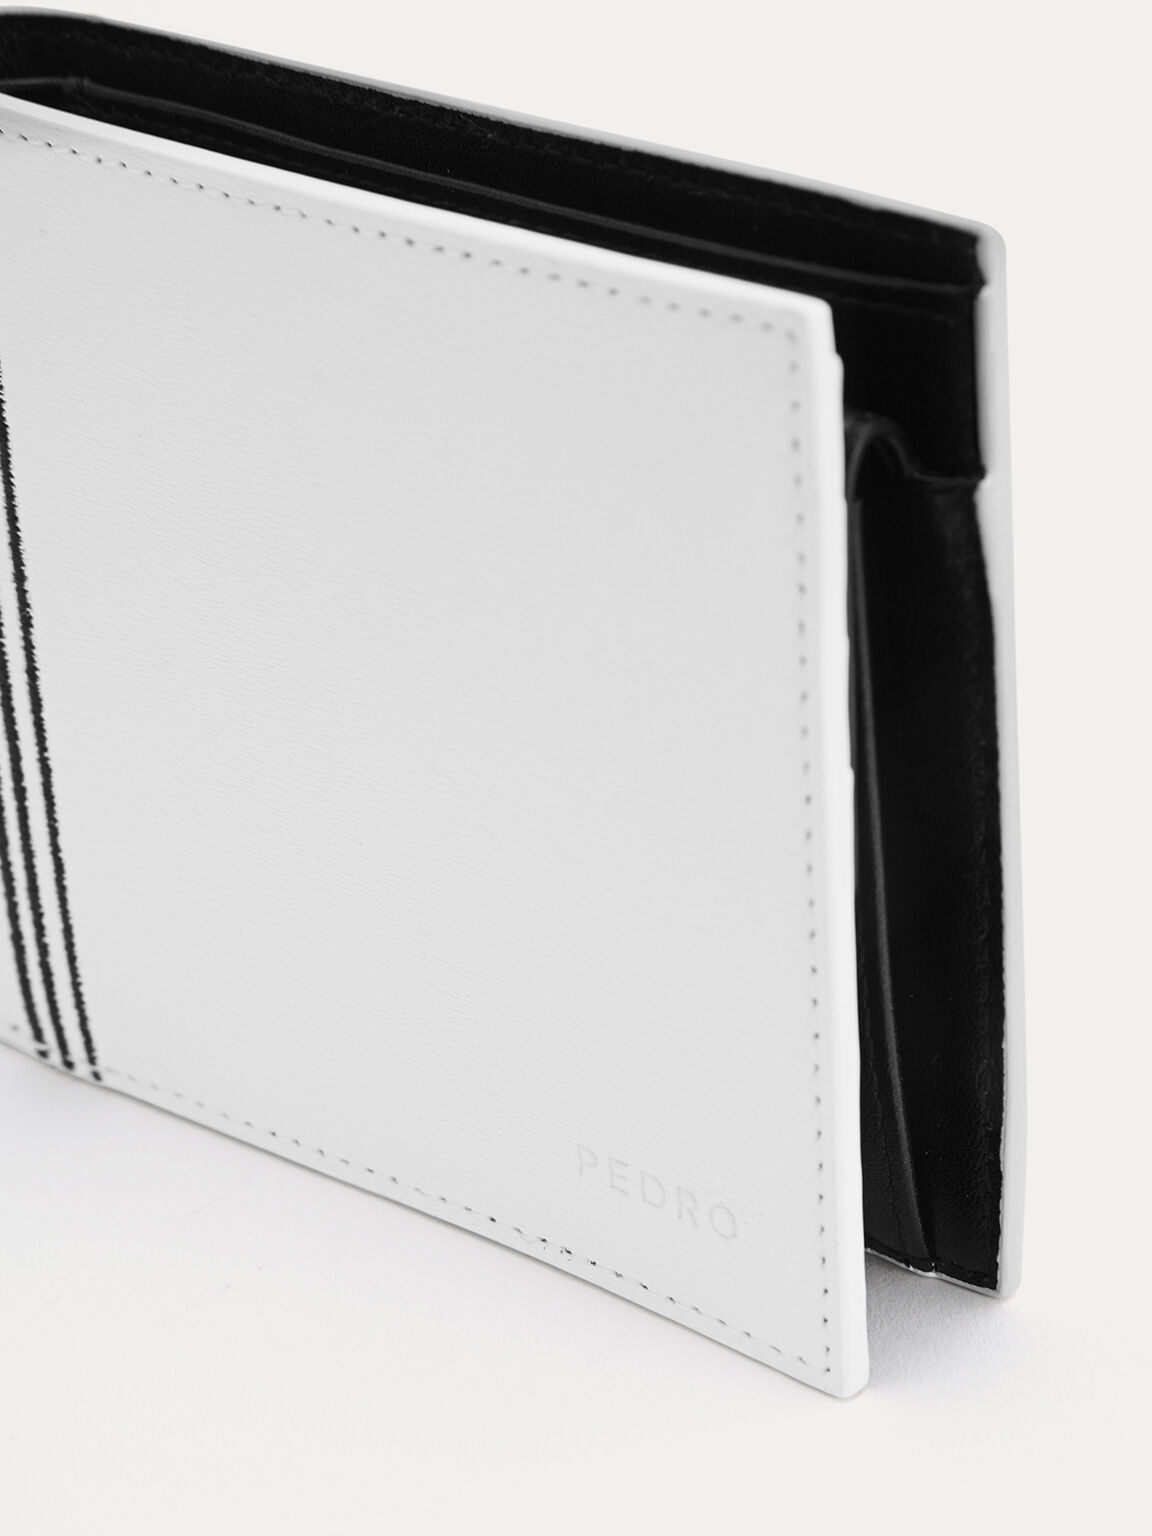 Textured Leather Bi-Fold Wallet with Coin Pouch, White, hi-res